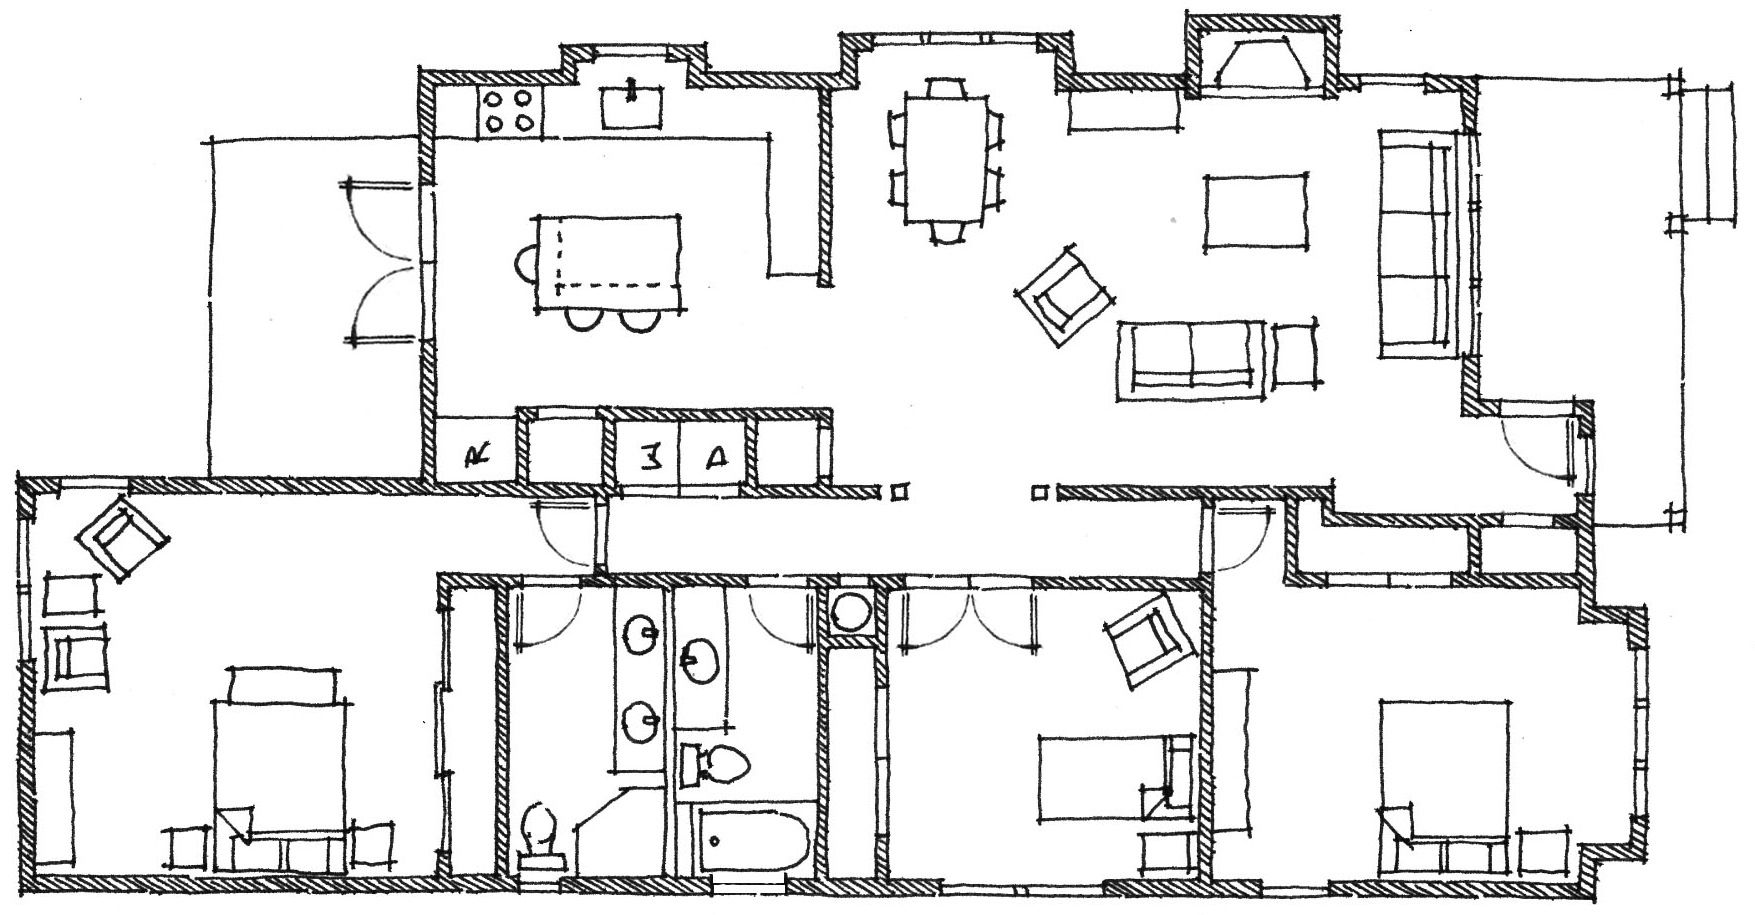 old fashioned farmhouse floor plans specifications are subject to change without notice - Farmhouse Plans